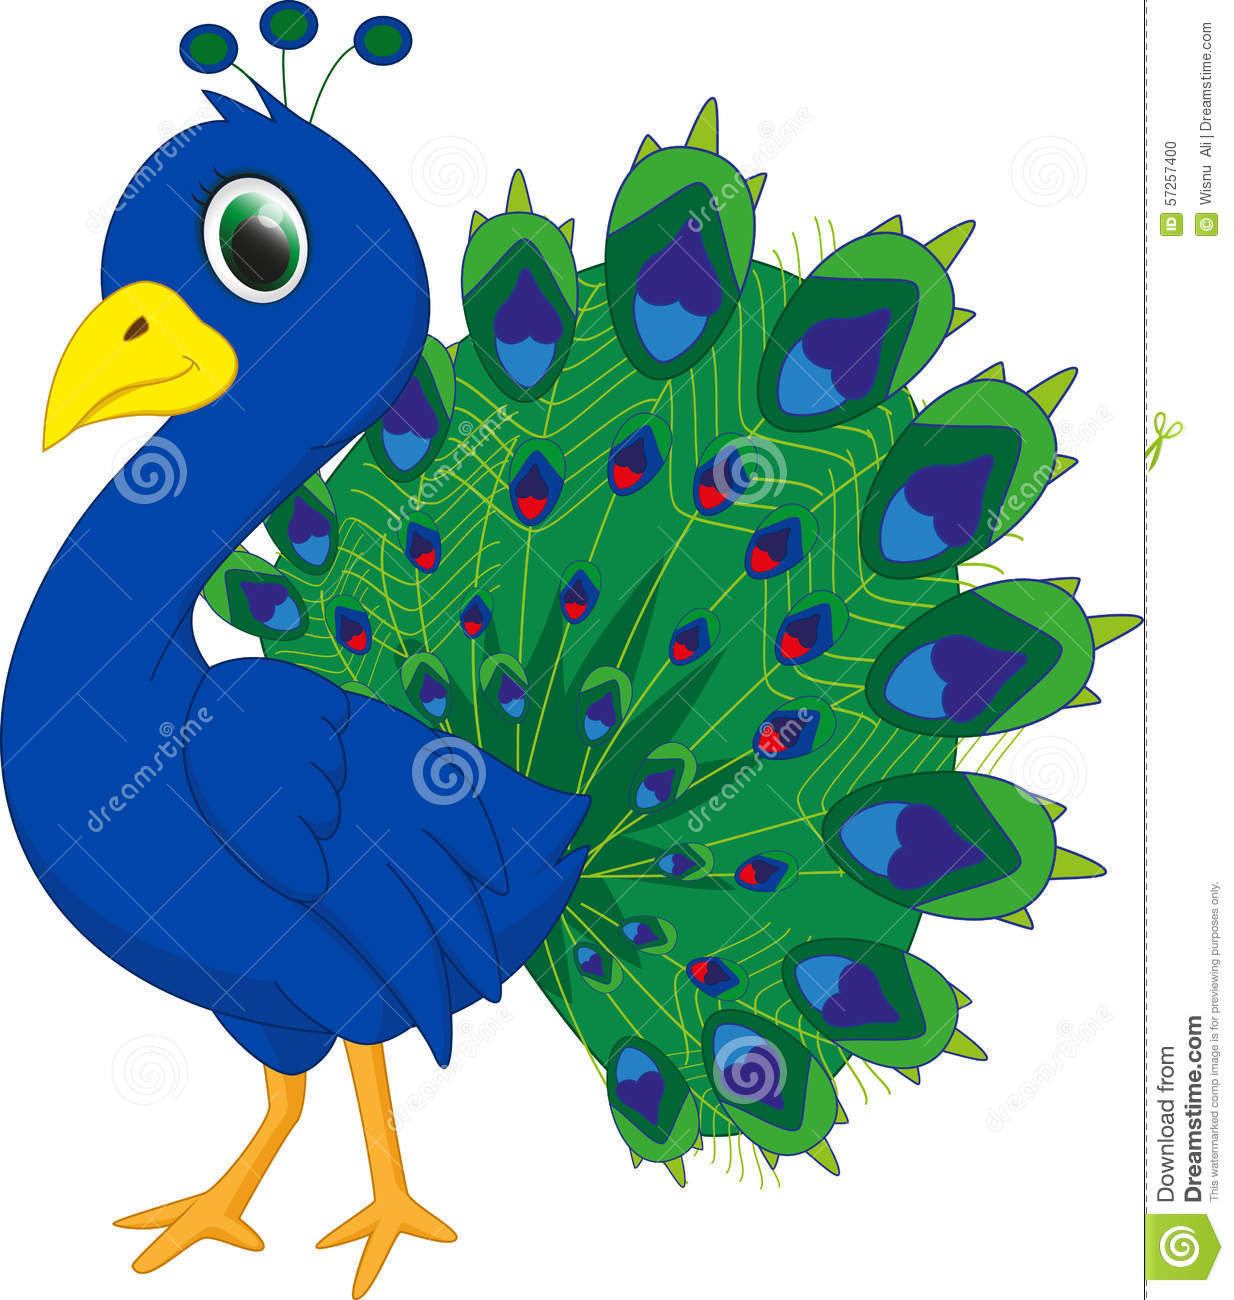 Cute Peacock Cartoon Stock Vector - Image: 57257400